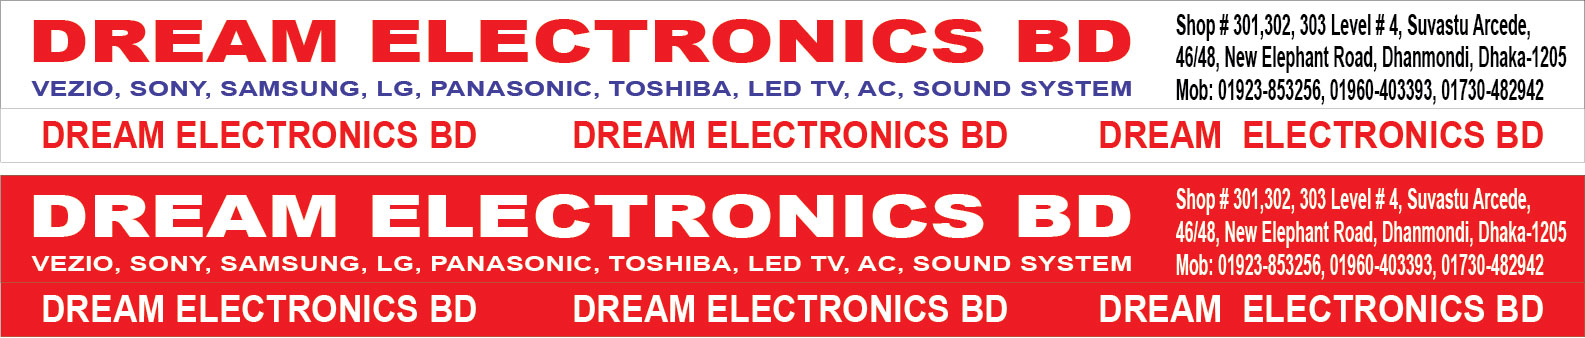 Image result for dream electronics bd